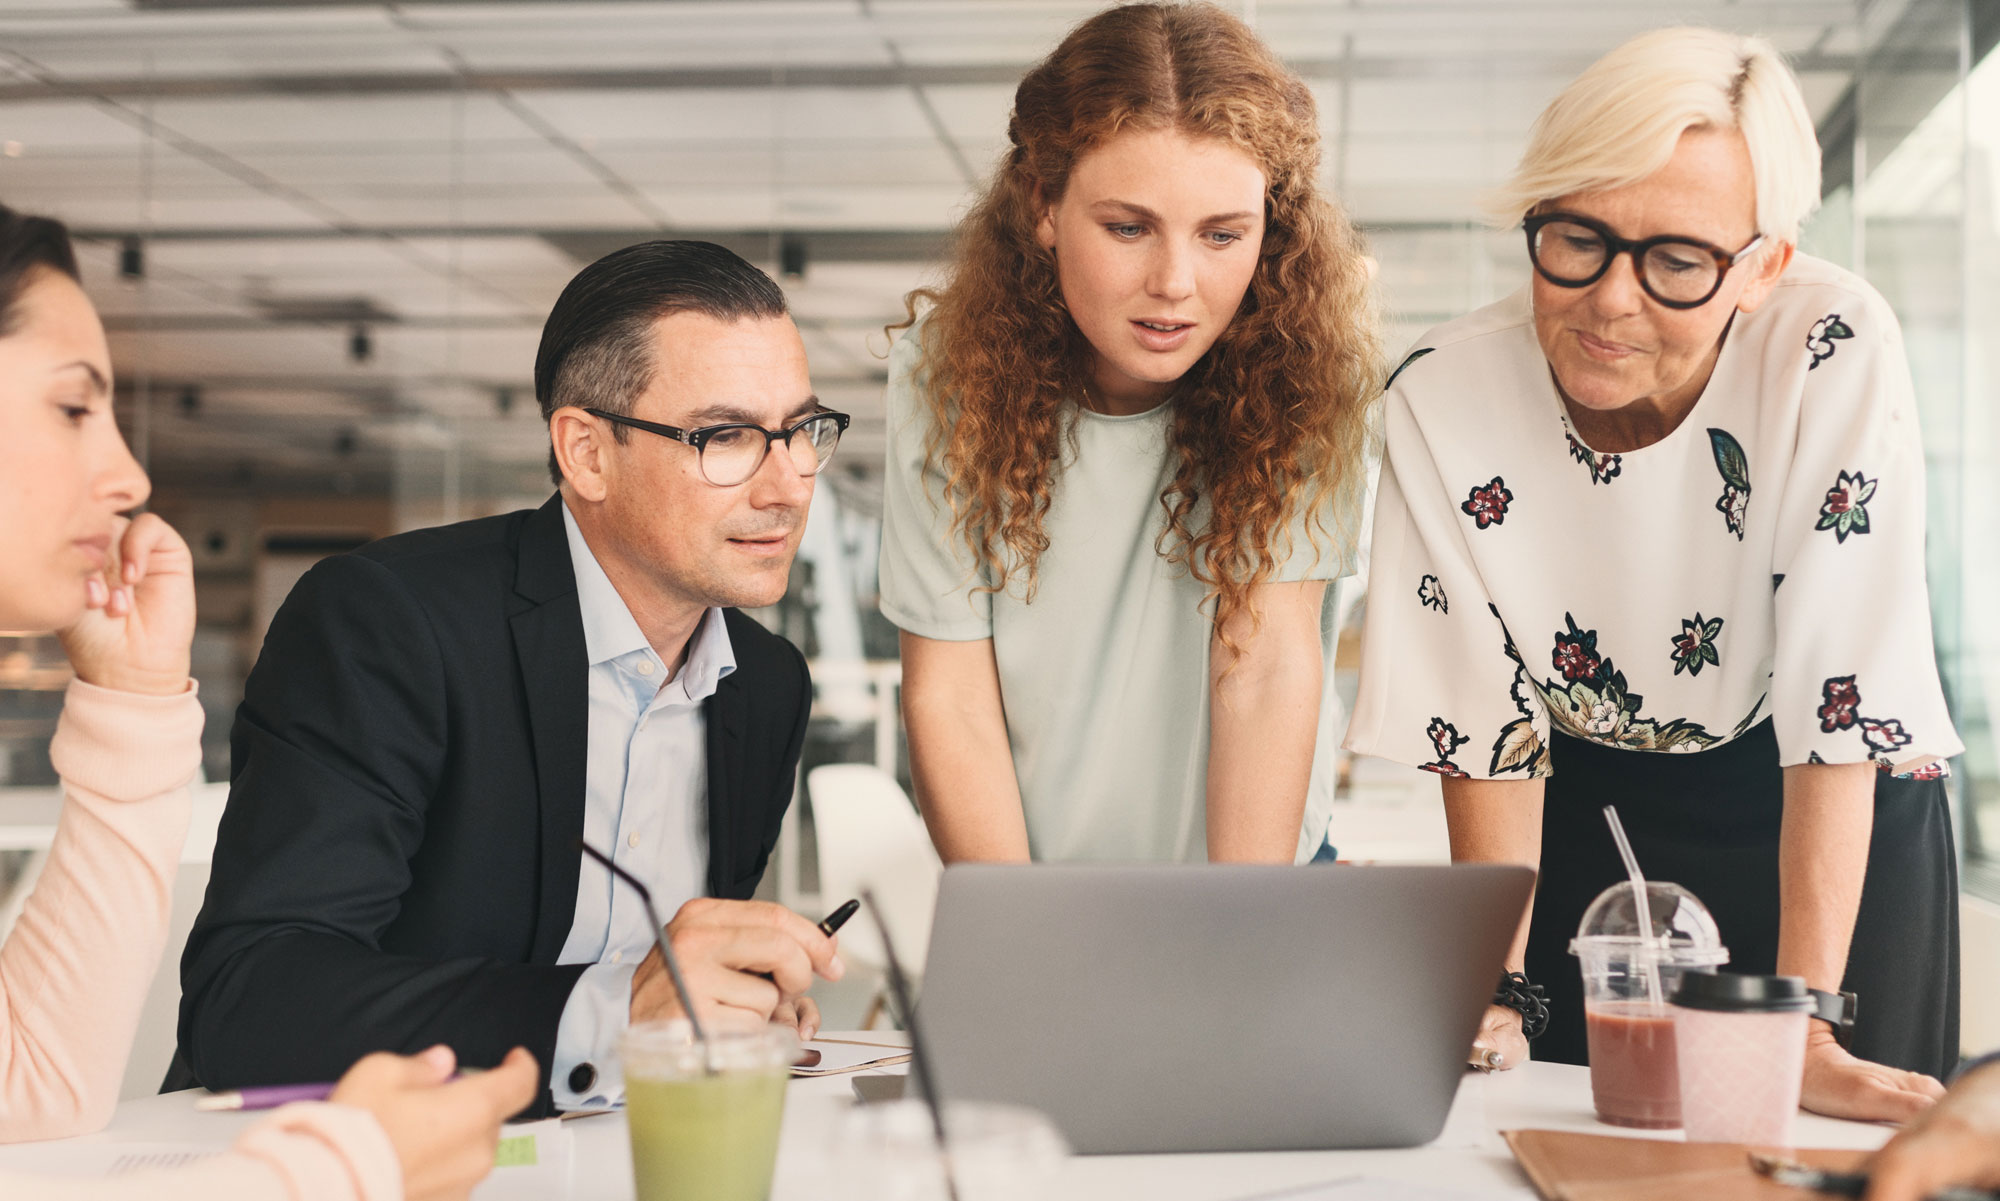 Business people looking at chart on a laptop.